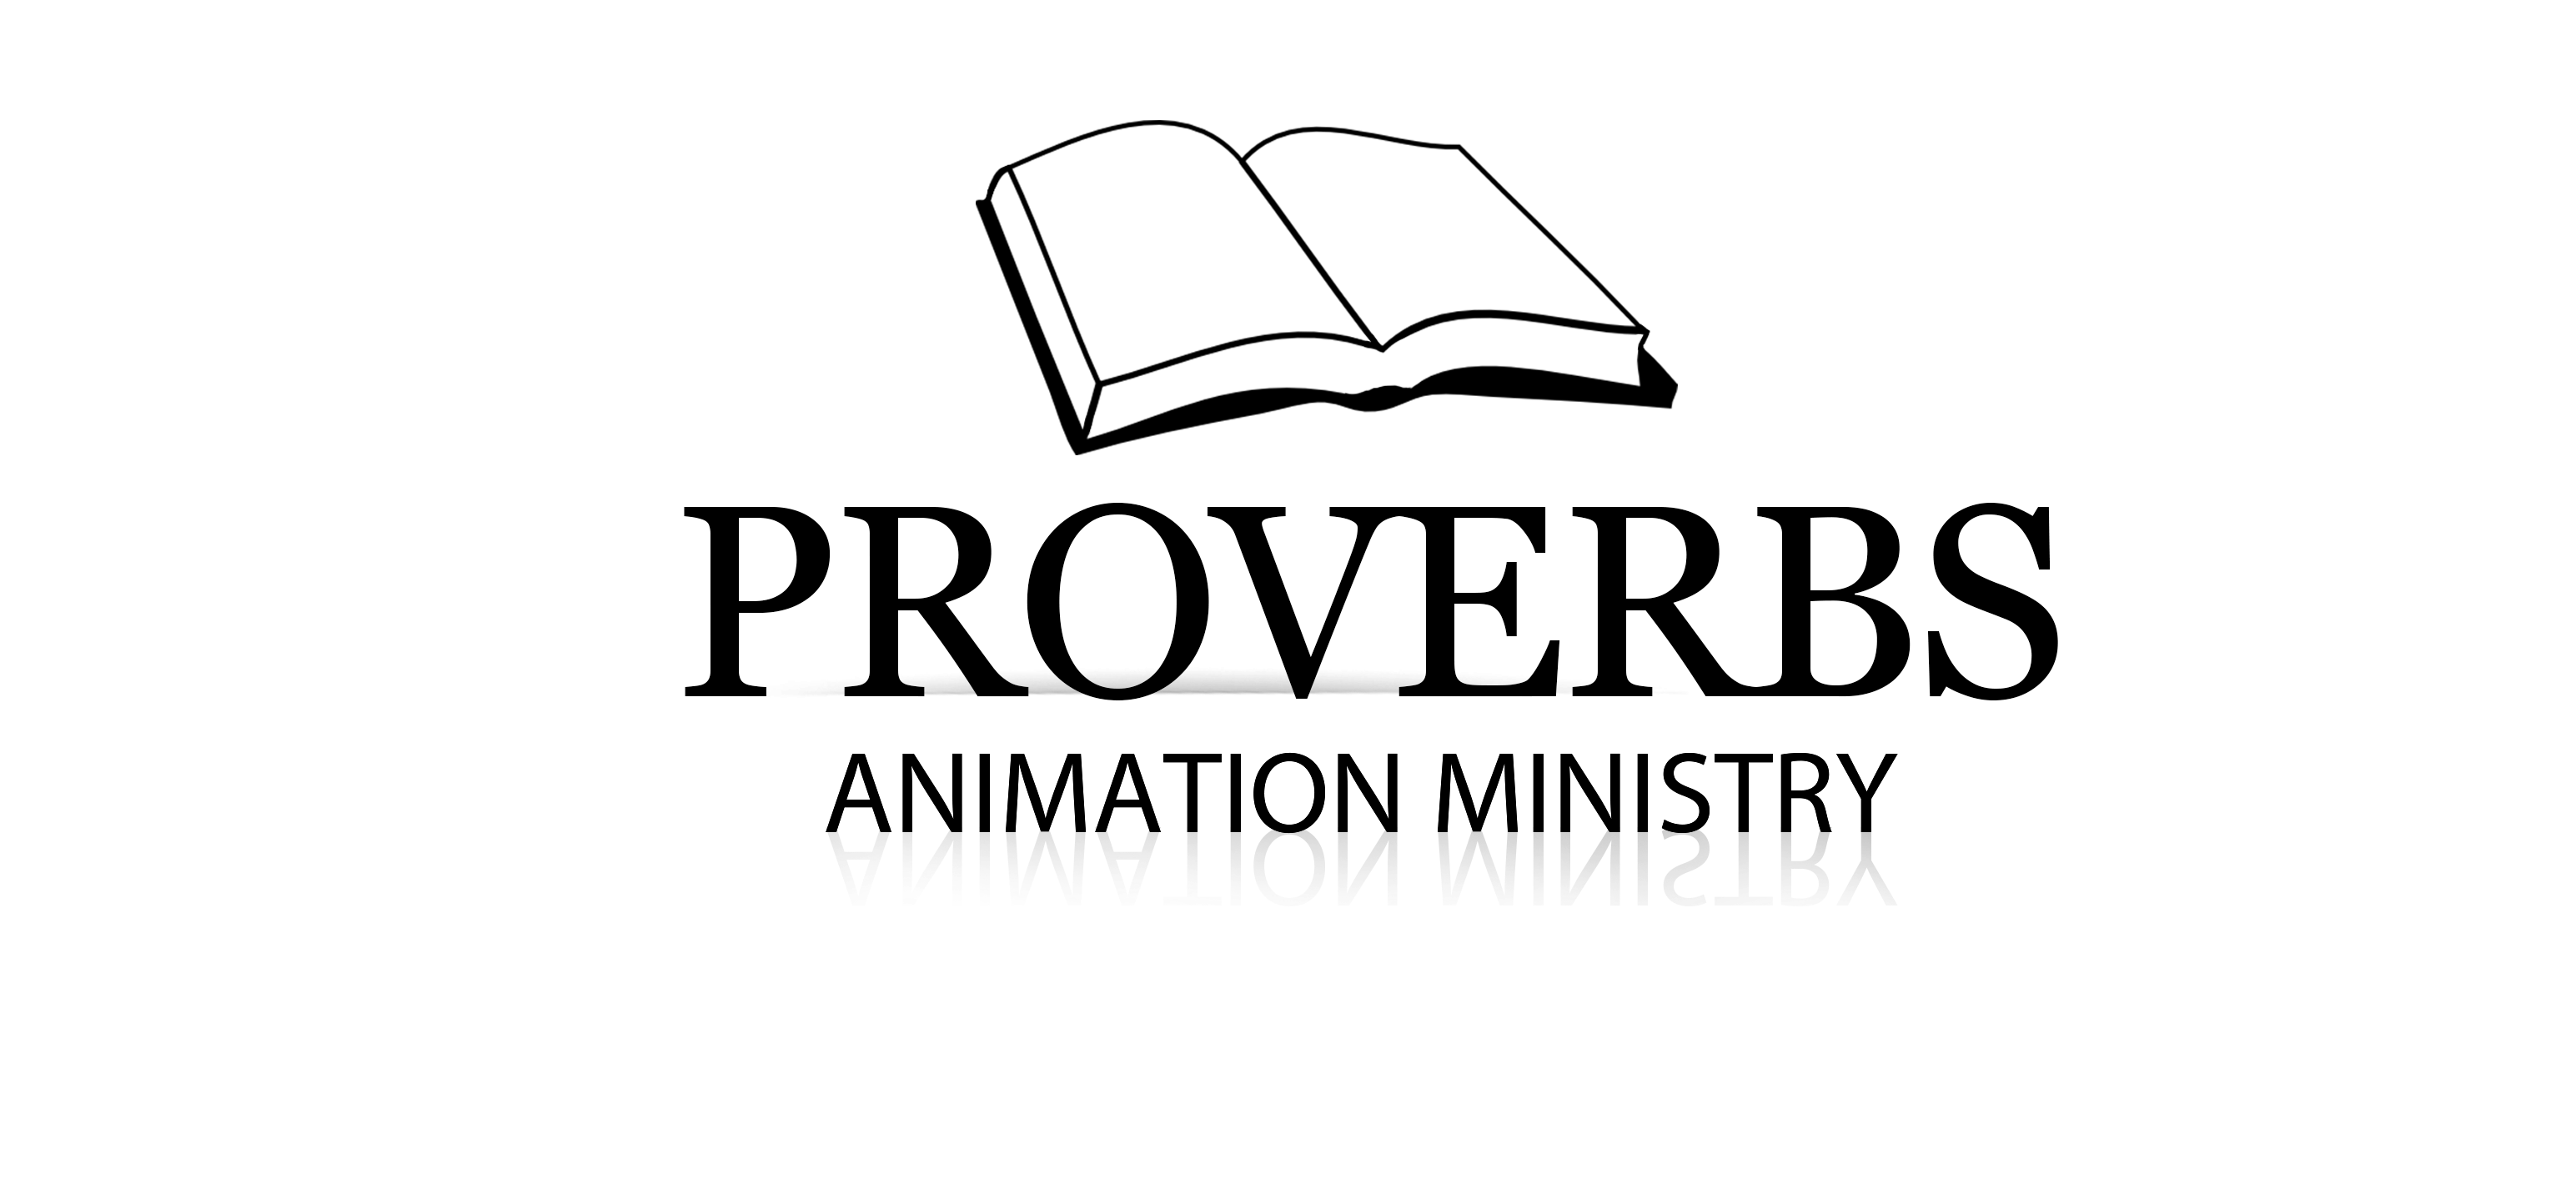 Download Proverbs Animation Ministry, Home Of Bible Based.